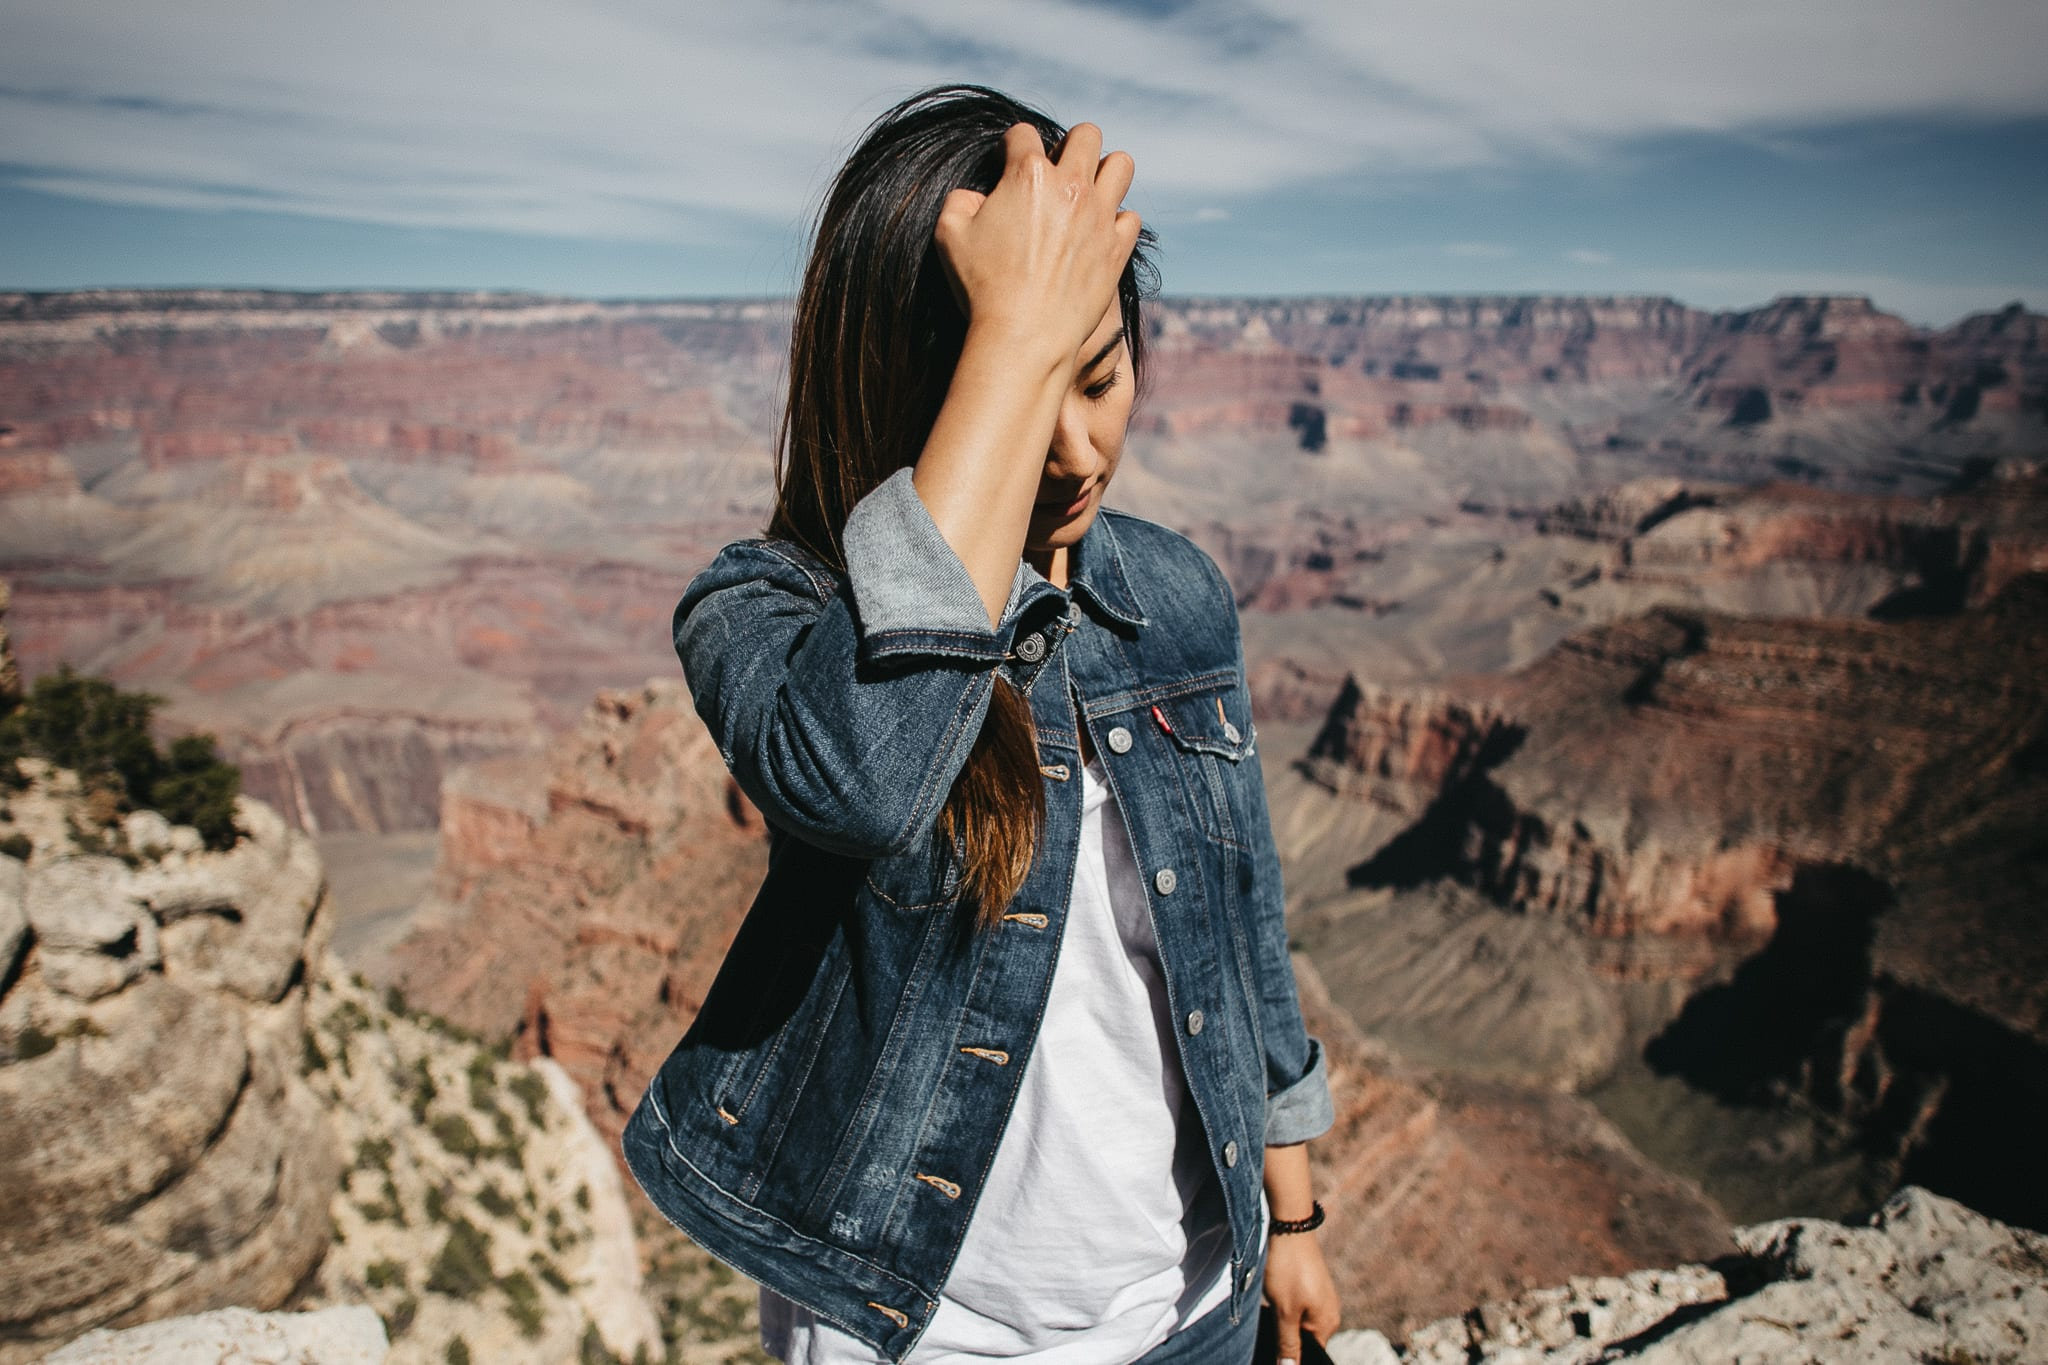 jc1-grand-canyon-arizona-lifestyle-portrait-photographer-7